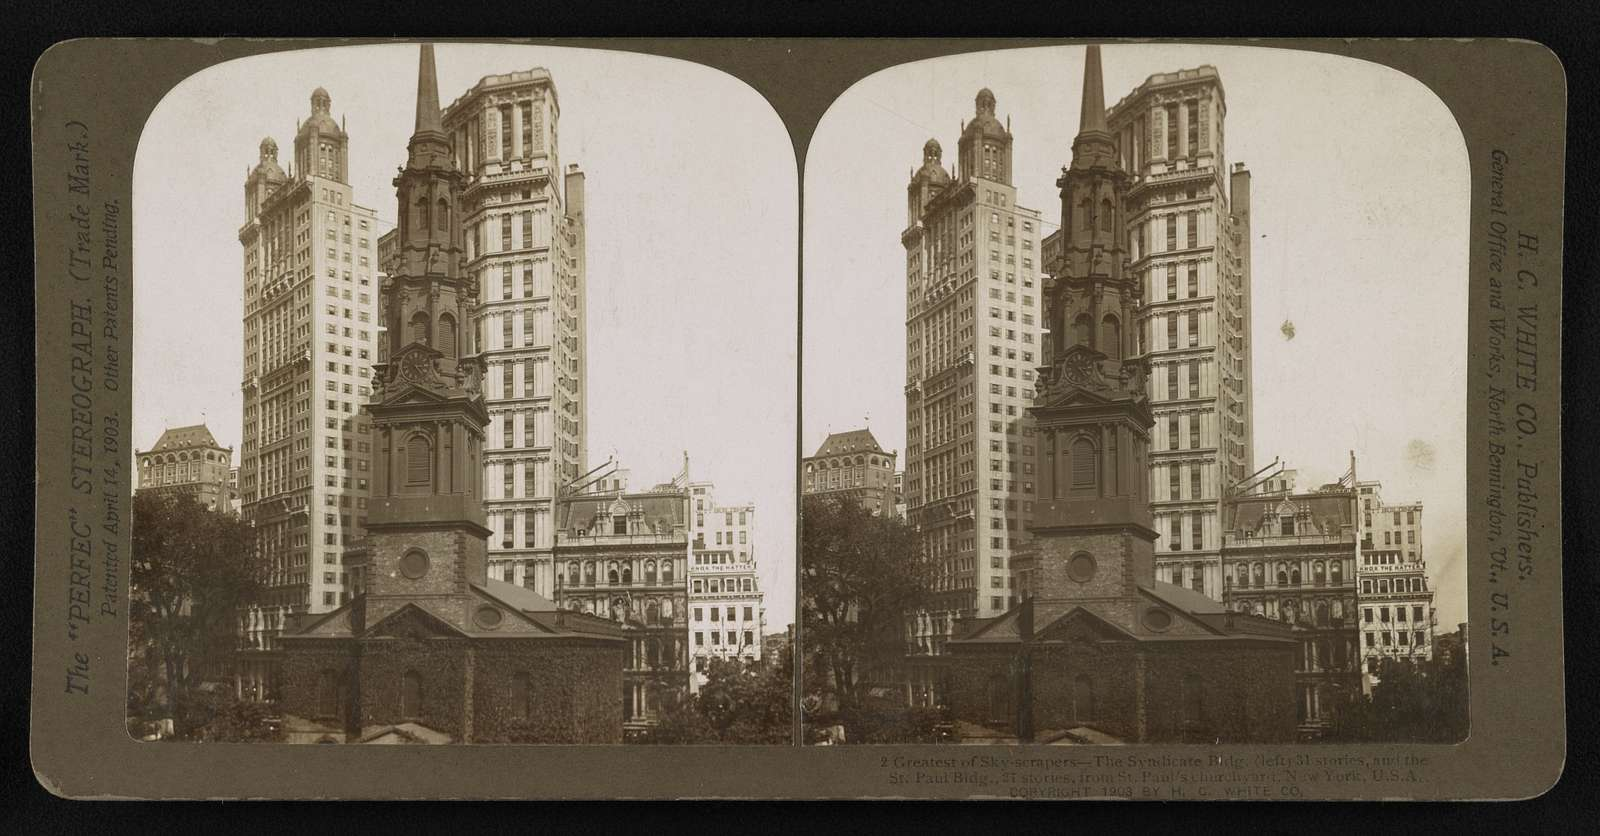 Greatest of sky-scrapers - The Syndicate Bldg. (left) 31 stories, and the St. Paul Bldg., 27 stories, from St. Paul's churchyard, New York, U.S.A